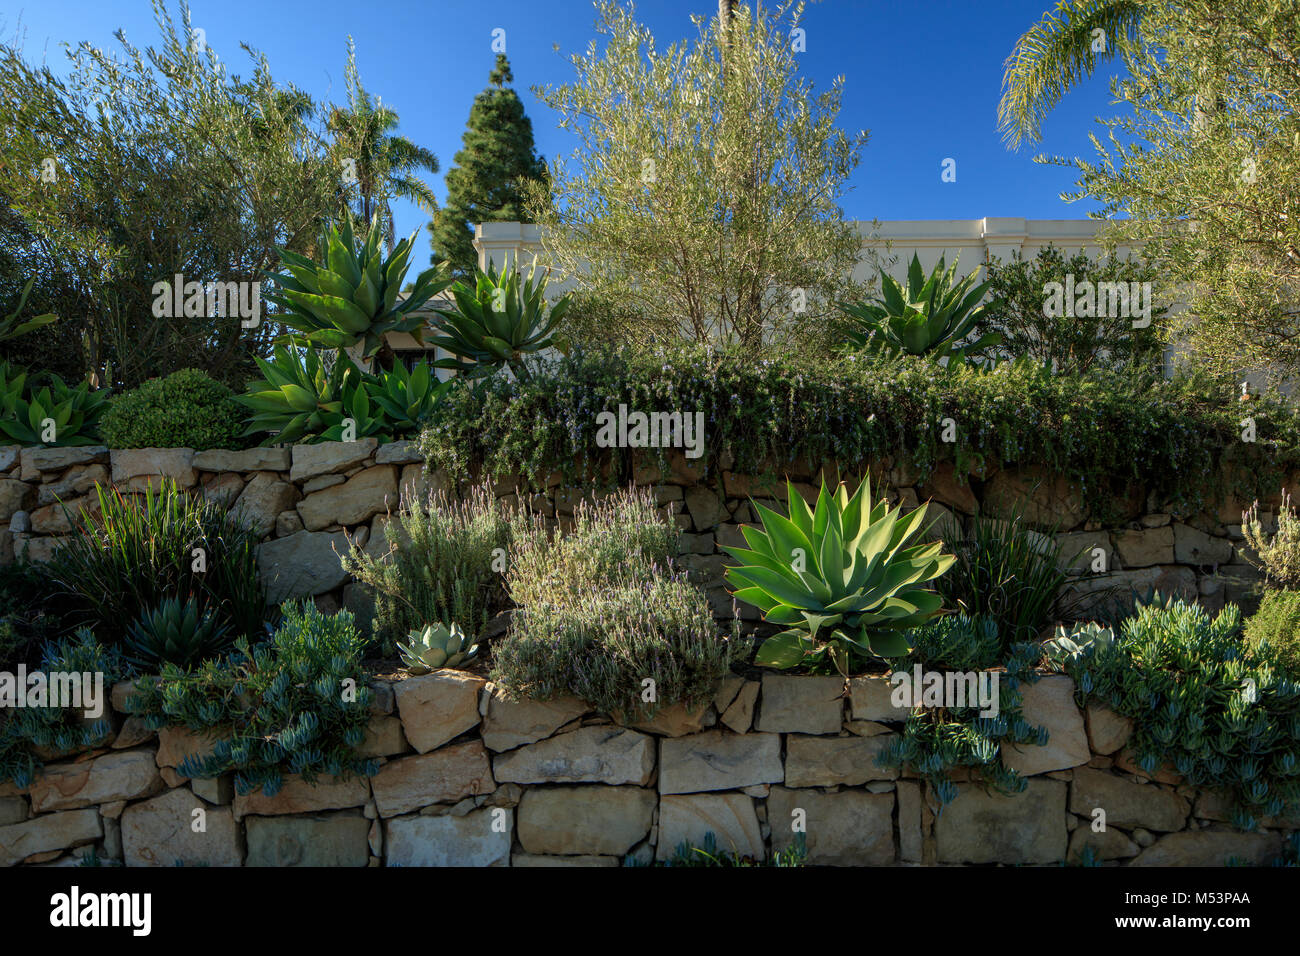 Double Layered Garden Featuring Succulents And Other Common Variety Of  Plants Found In A Southern Californian Home